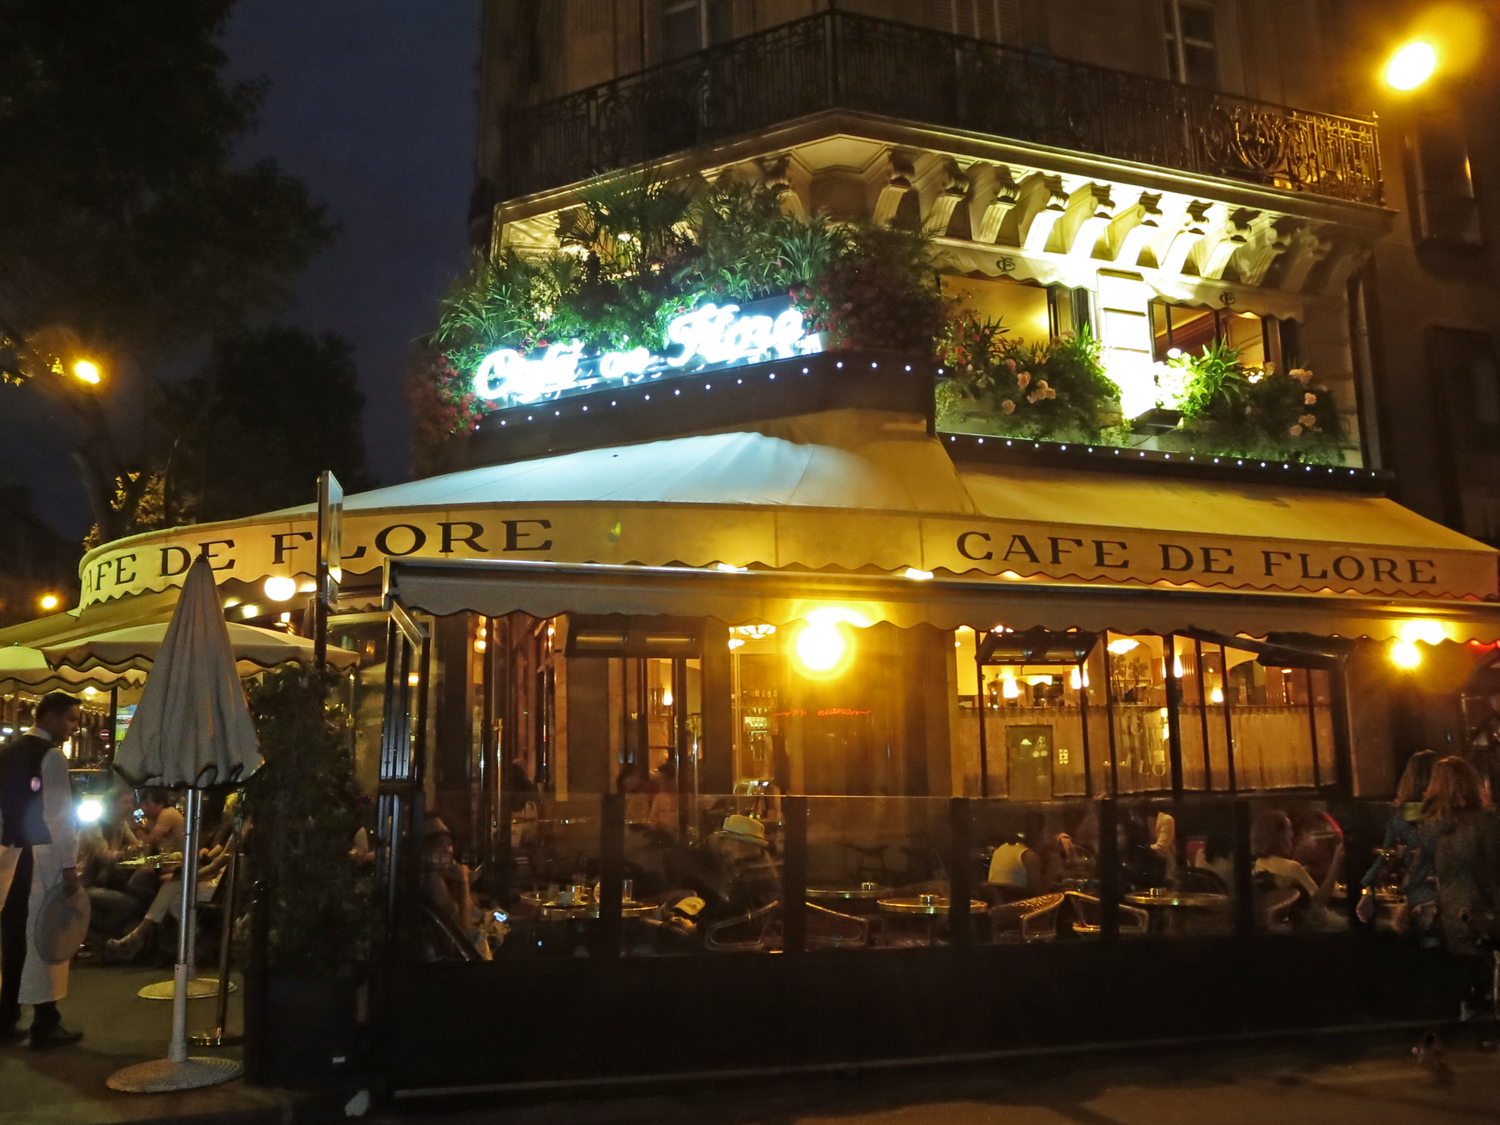 CAFE DE FLORE, 172 Boulevard Saint-Germain, 75006 Paris, France